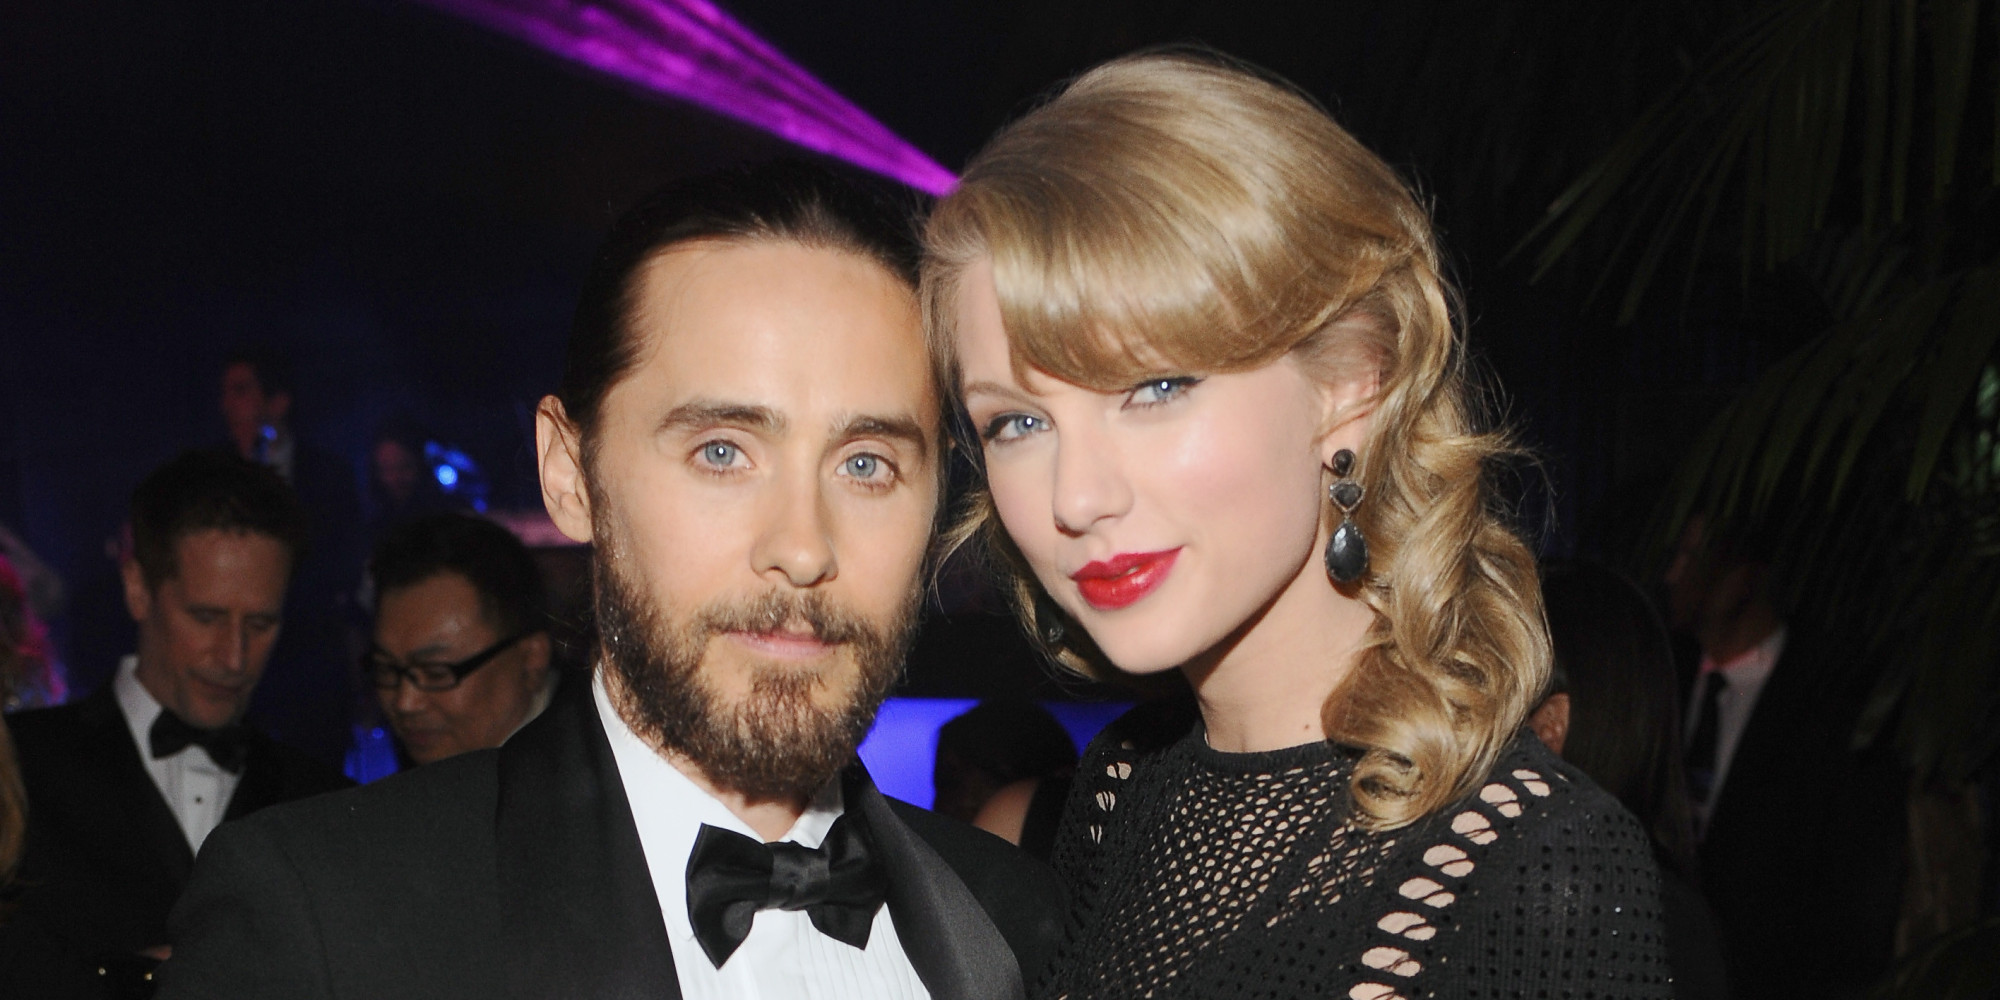 Taylor Swift Jared Leto Romance Rumors Start To Fly After